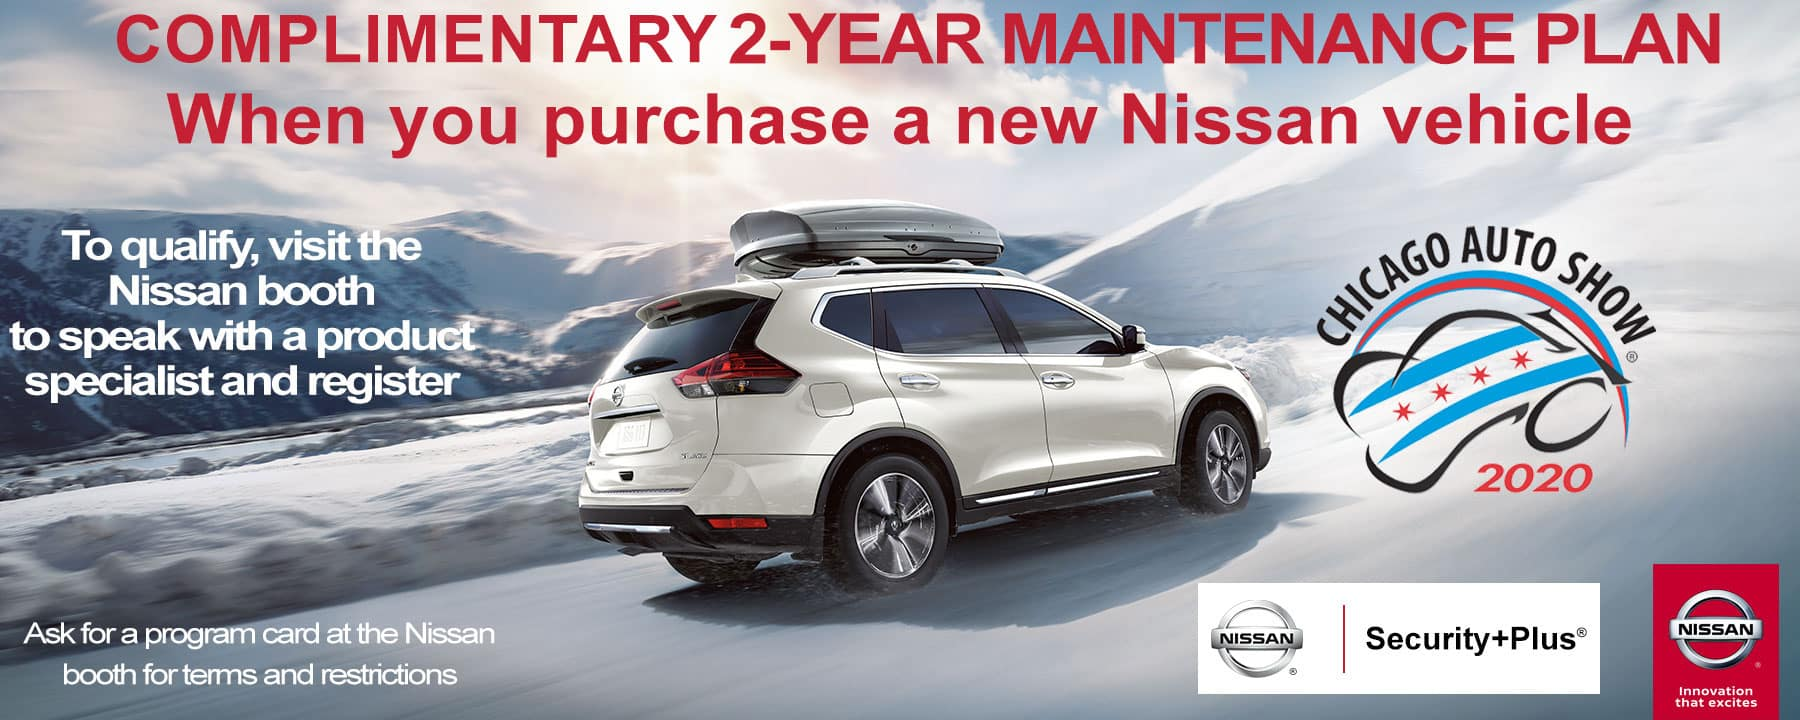 Receive Complimentary 2-Year Maintenance Plan when you purchase a new Nissan vehicle during the Chicago Auto Show